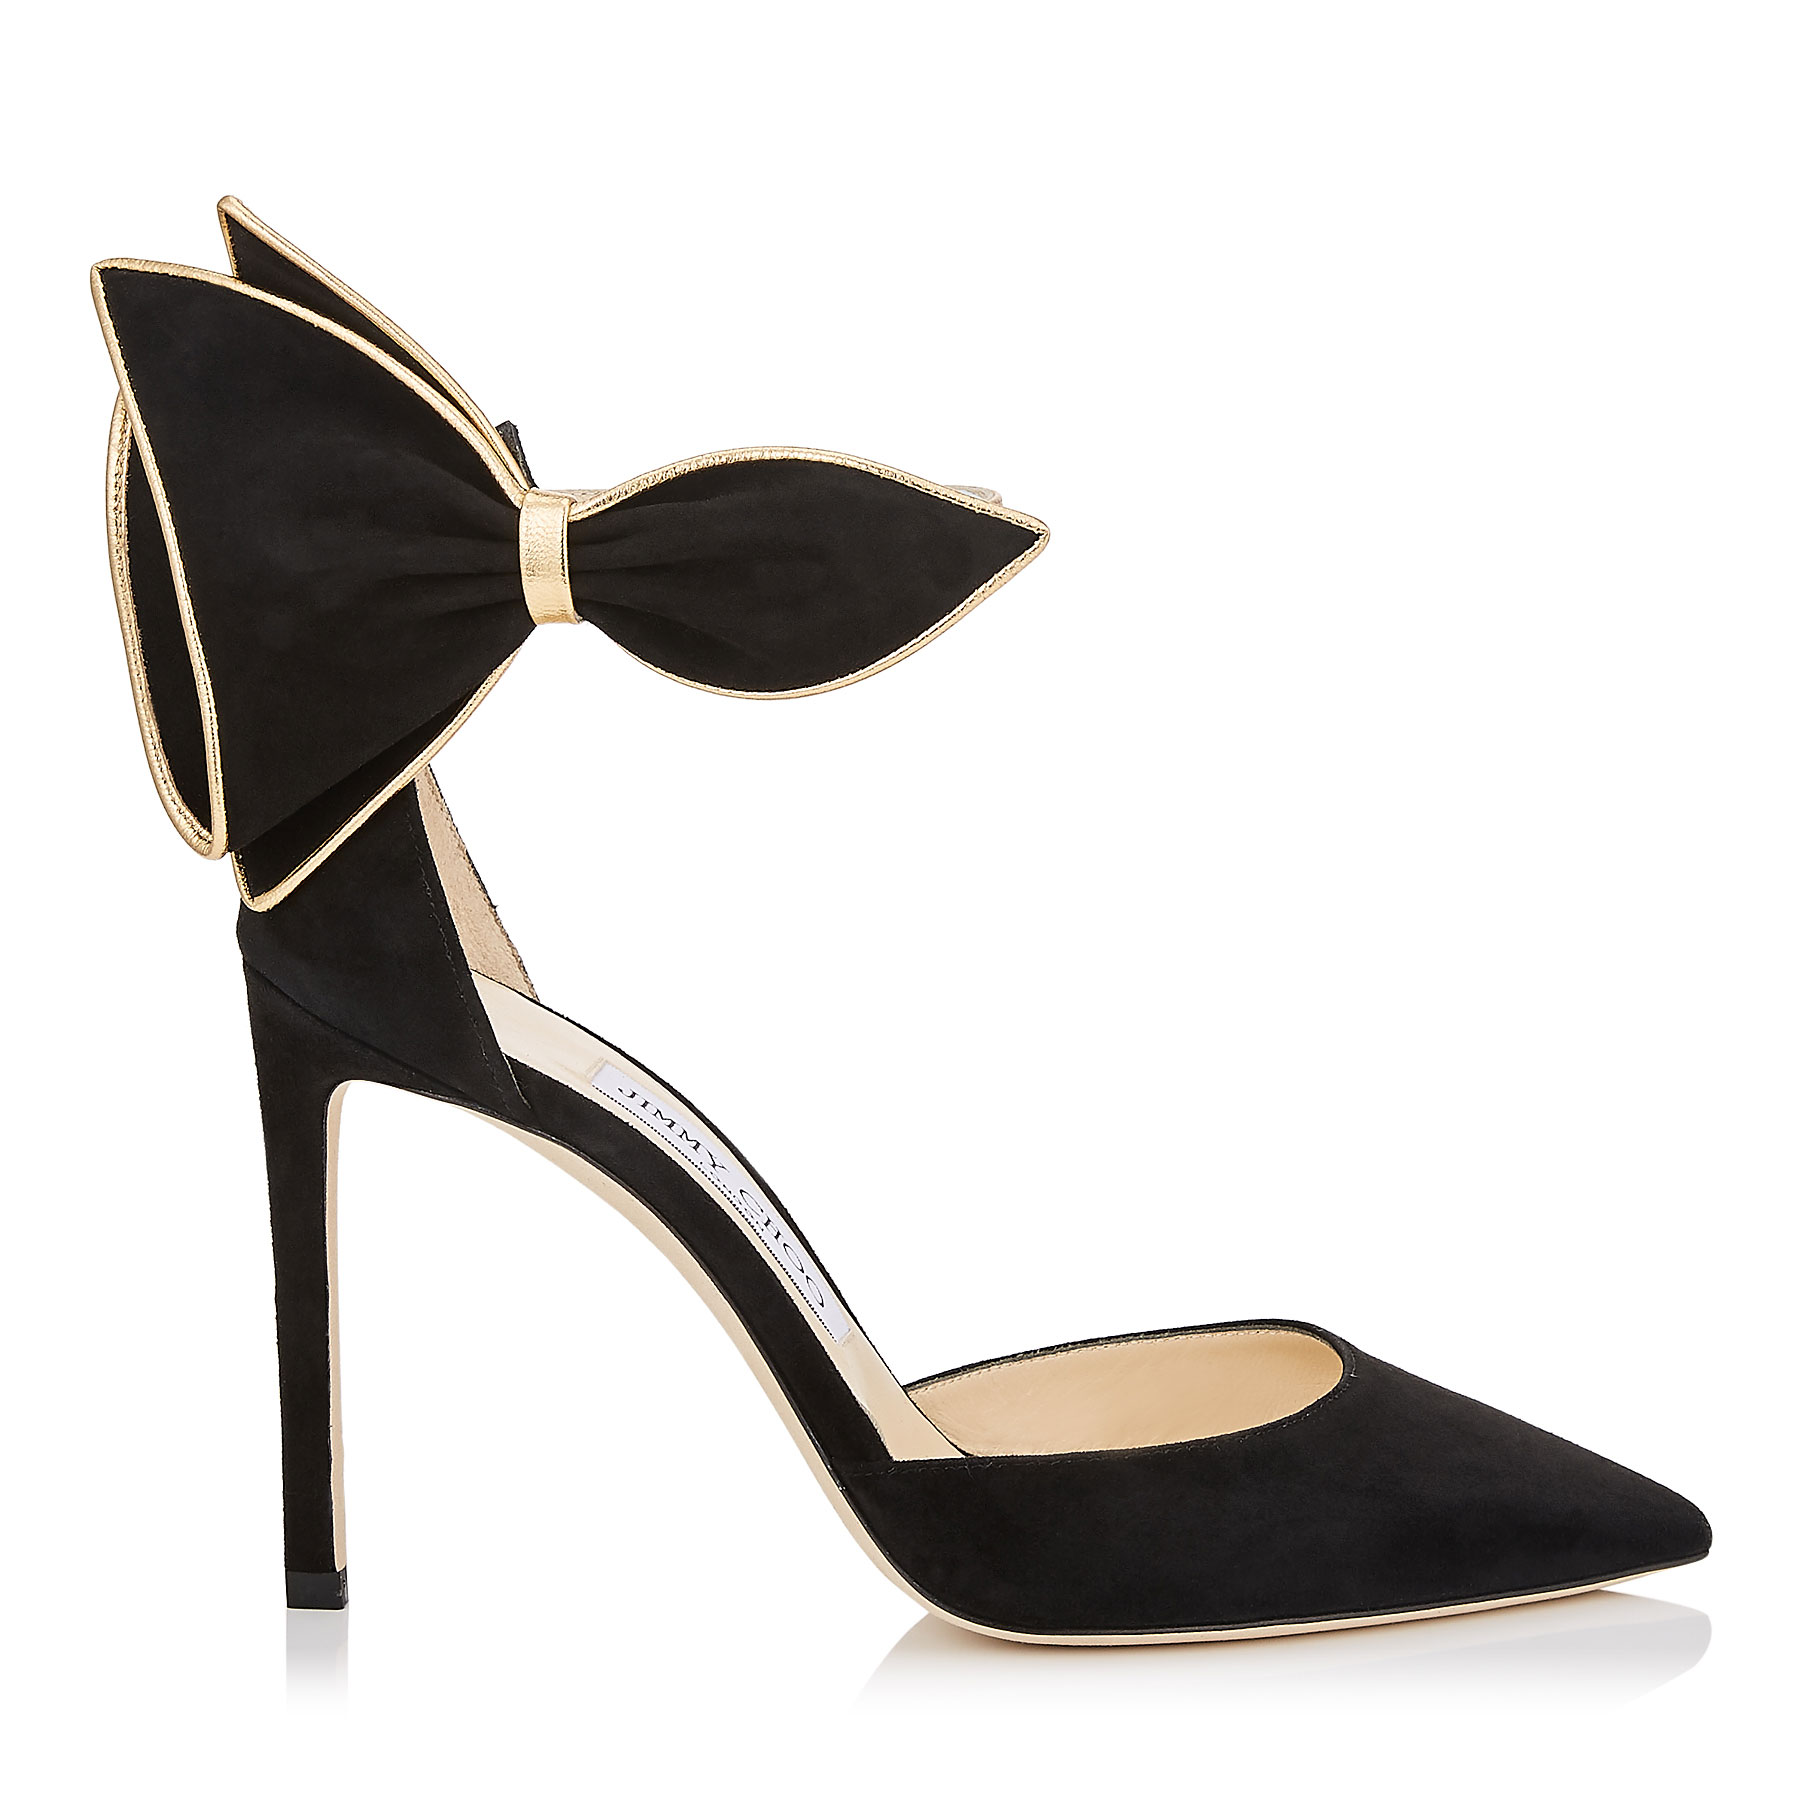 KELLEY 100 Black Suede Pointy Toe Pumps with Gold Metallic Nappa Leather Piping by Jimmy Choo